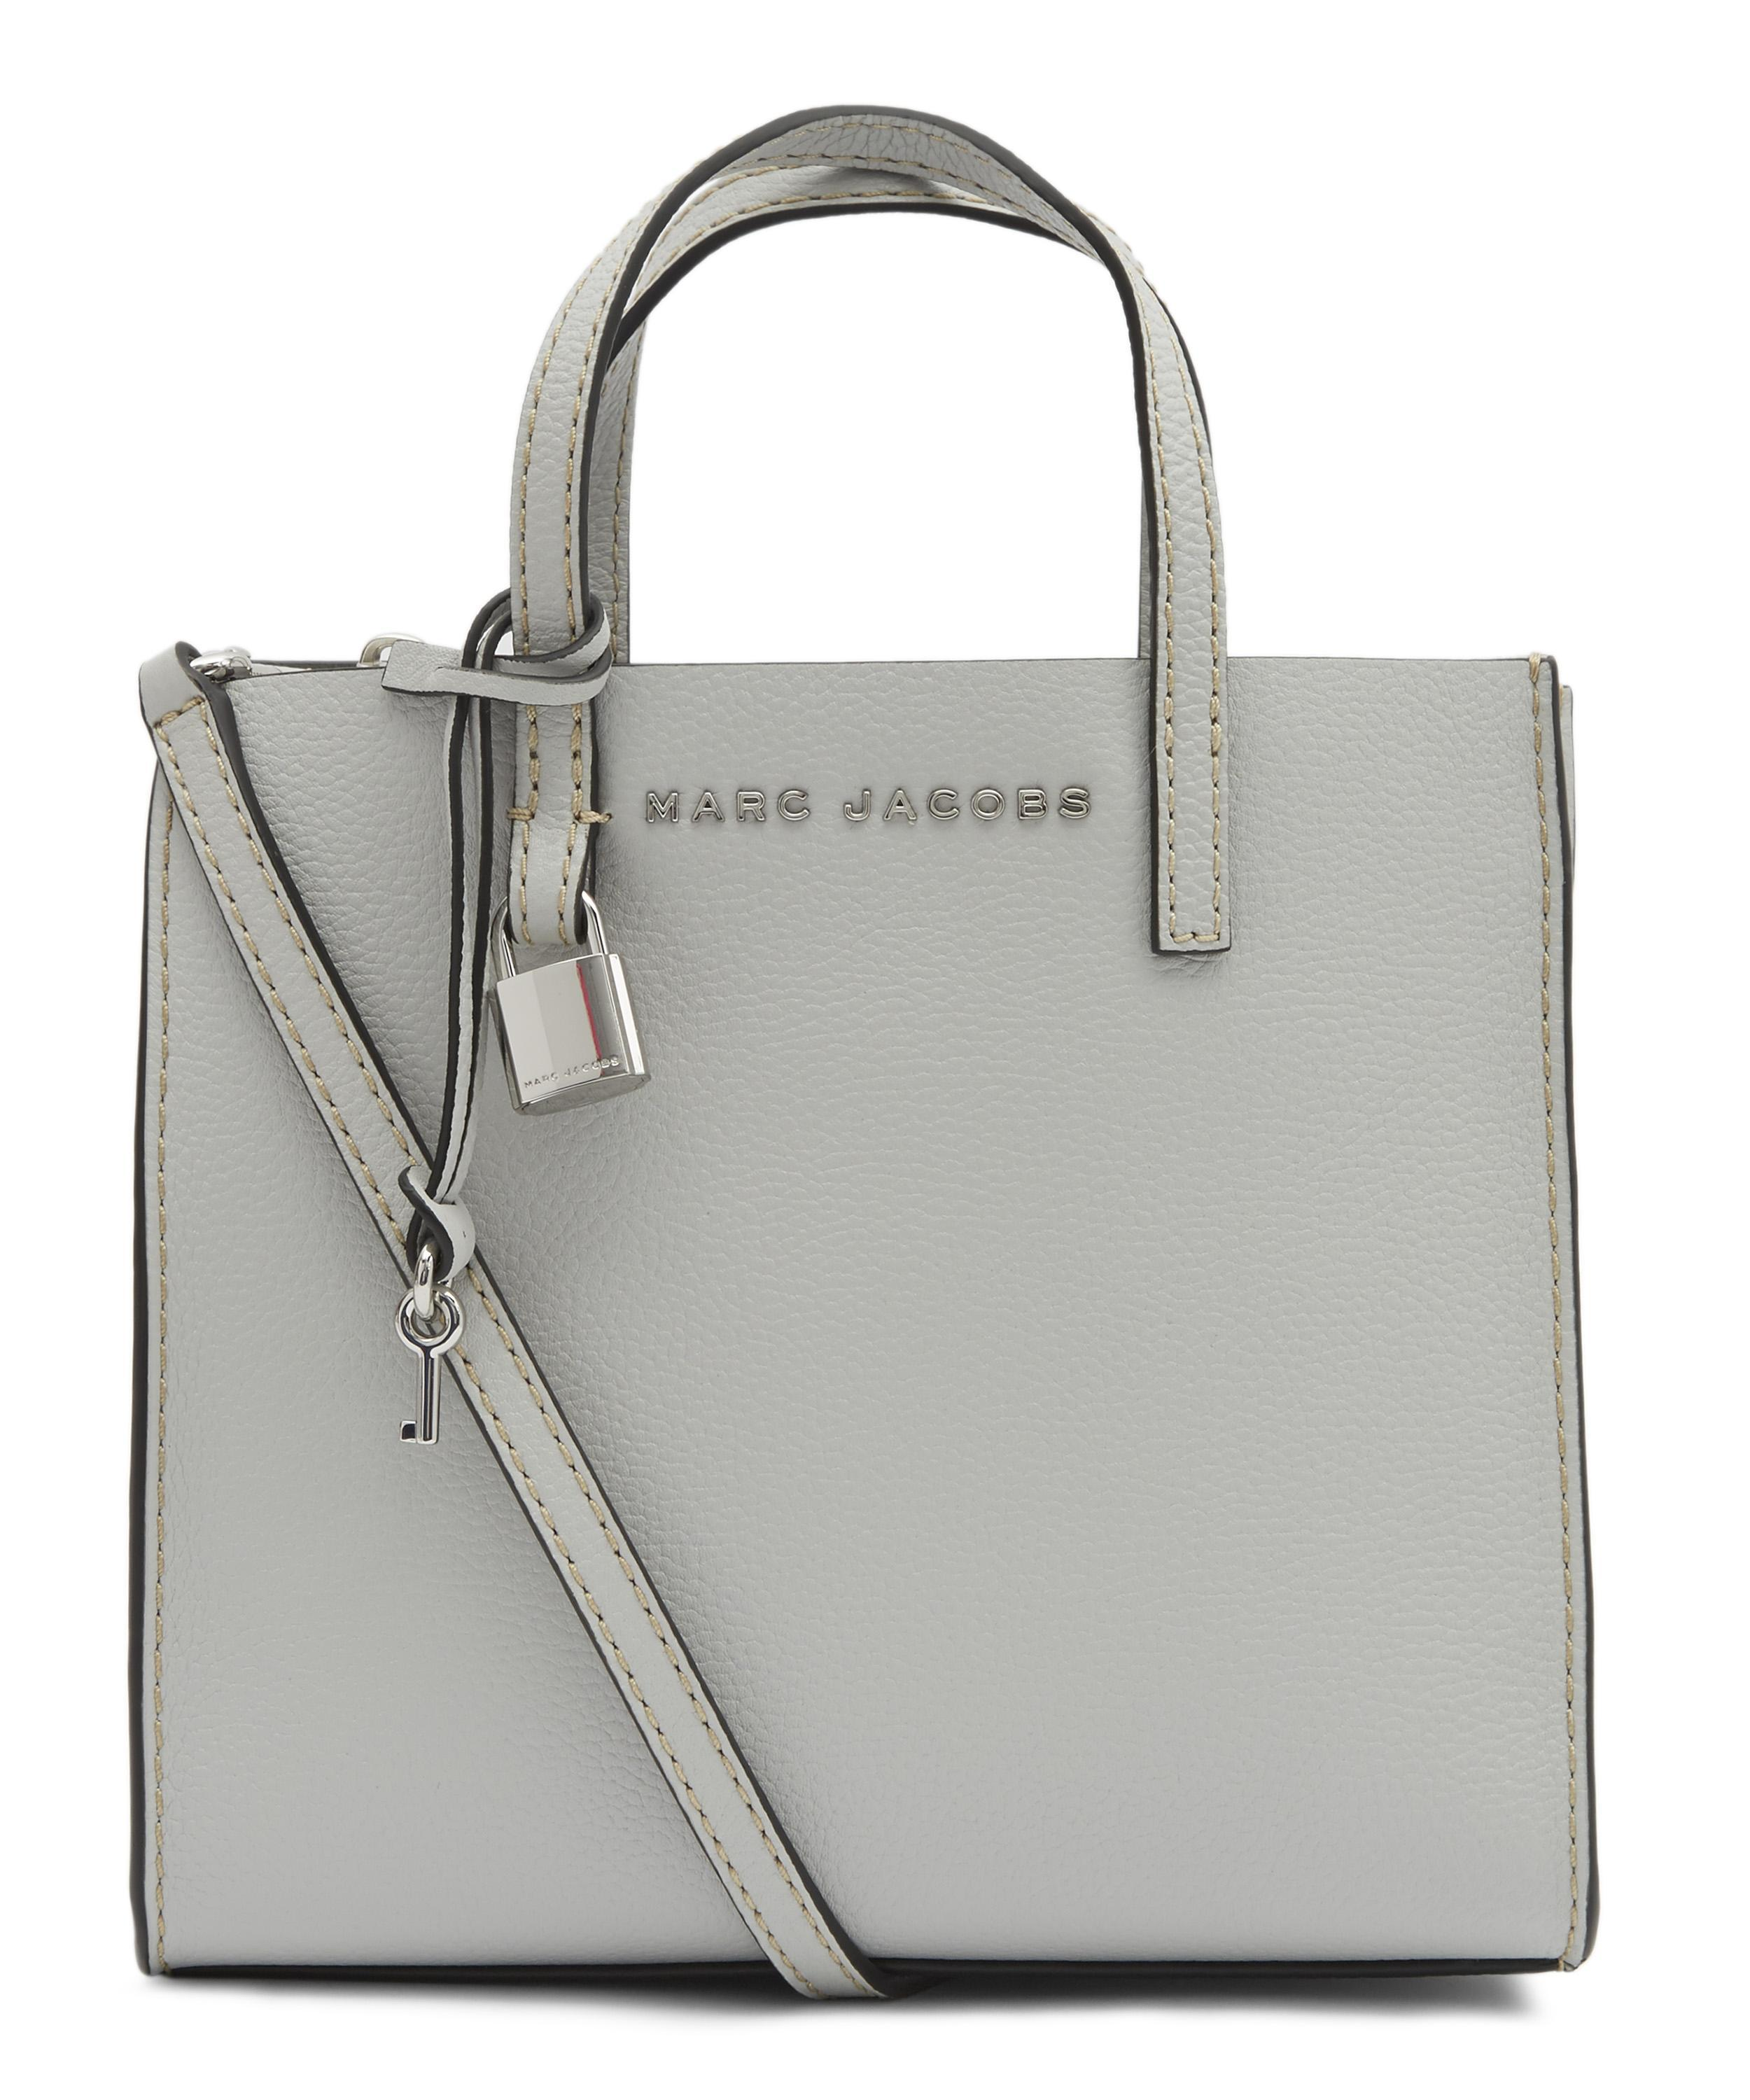 9a7c354eb2443 Marc Jacobs - Gray The Mini Grind Leather Tote - Lyst. View fullscreen